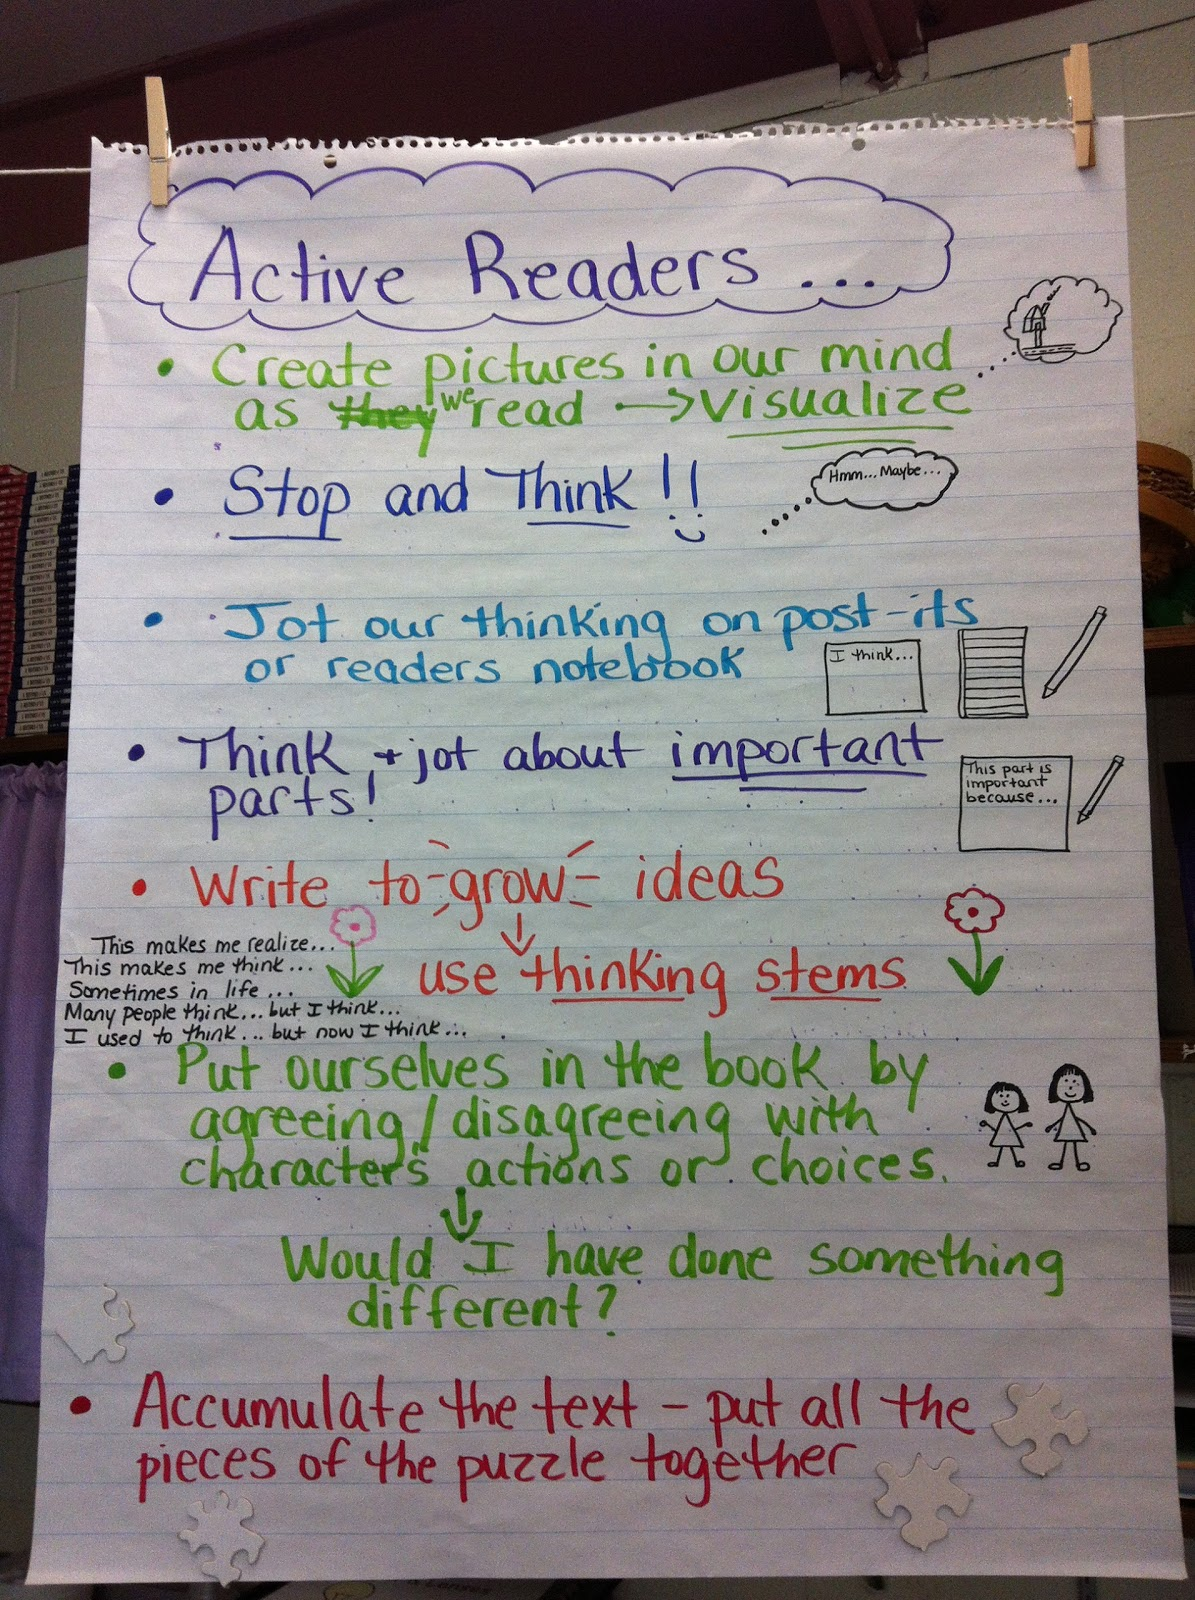 reflective reading Utilizing reflective teaching strategies in the classroom has benefits that enrich and promote learning this article will discuss several that are easy to facilitate.